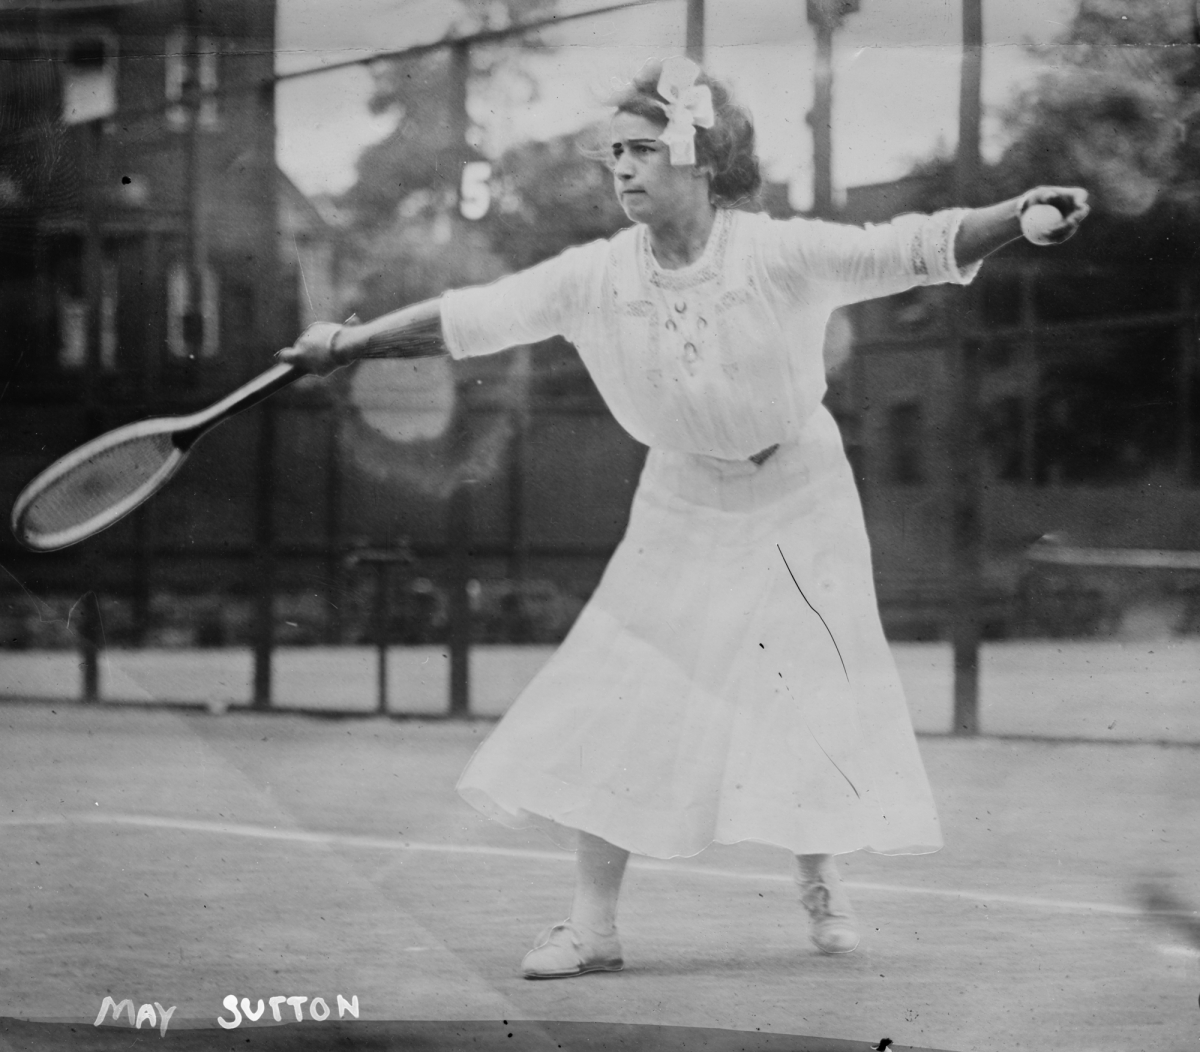 American tennis champion May Sutton, 1910s At age 17 she won the singles title at the U.S. National Championships and in 1905 she became the first American player to win the singles title at Wimbledon. (The George Grantham Bain Collection - Library of Congress archive)